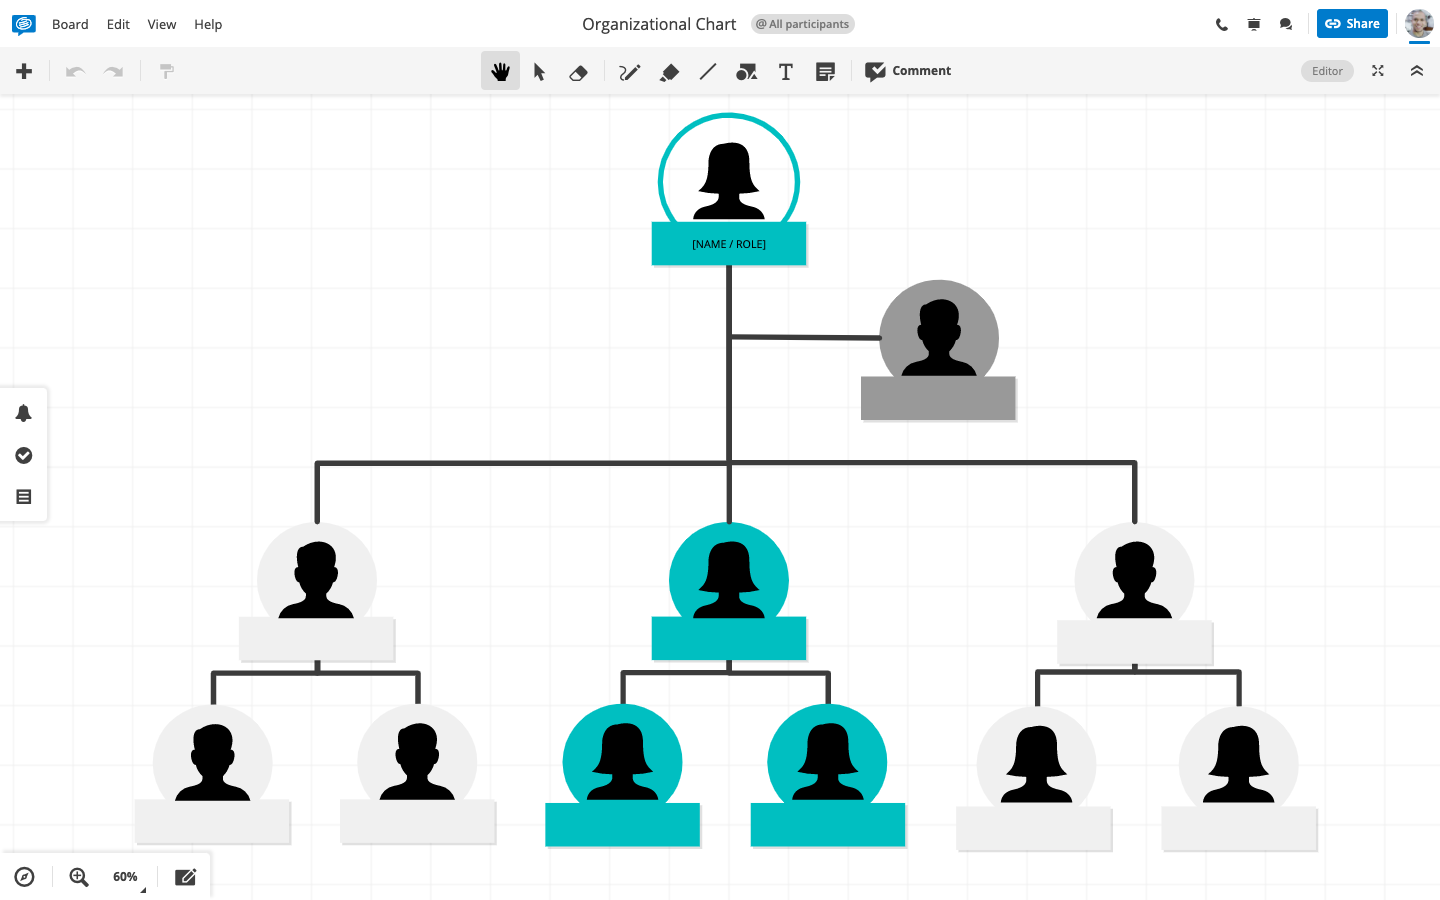 Organizational Chart with Icons